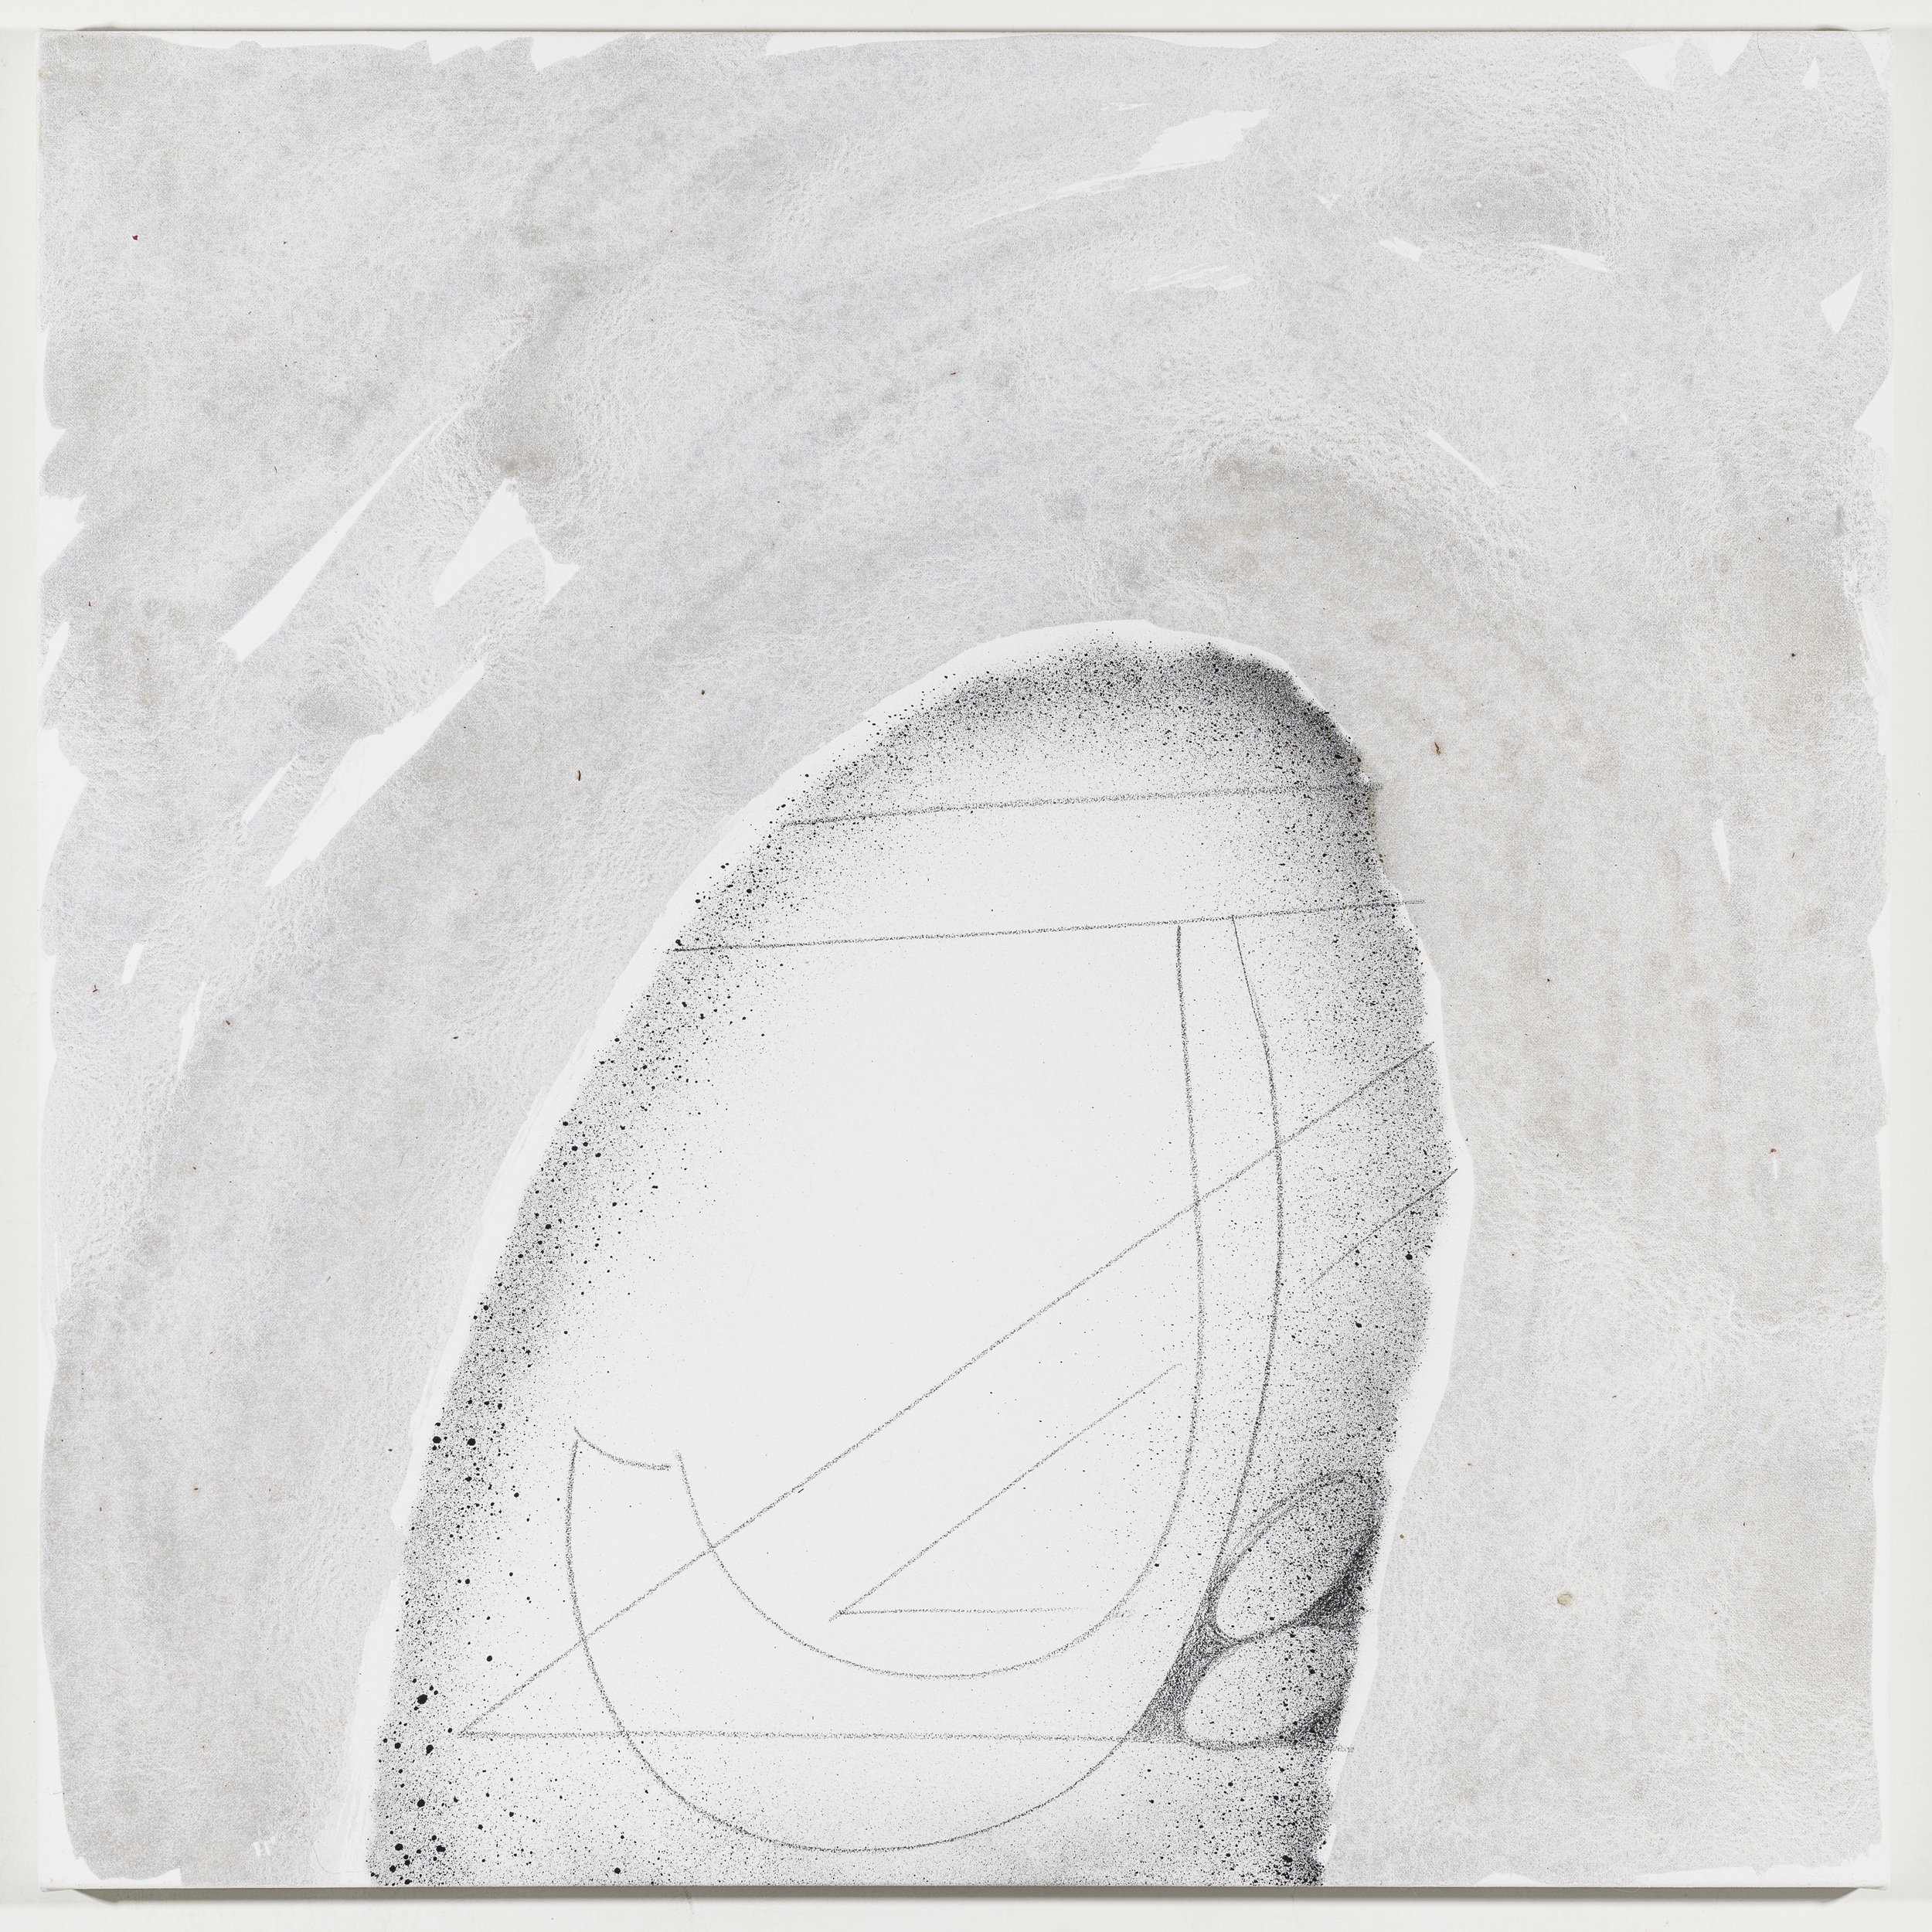 Initials: Jenny Zigrino   2018  Graphite and acrylic on canvas  20 x 20 inches; 51 x 51 cm